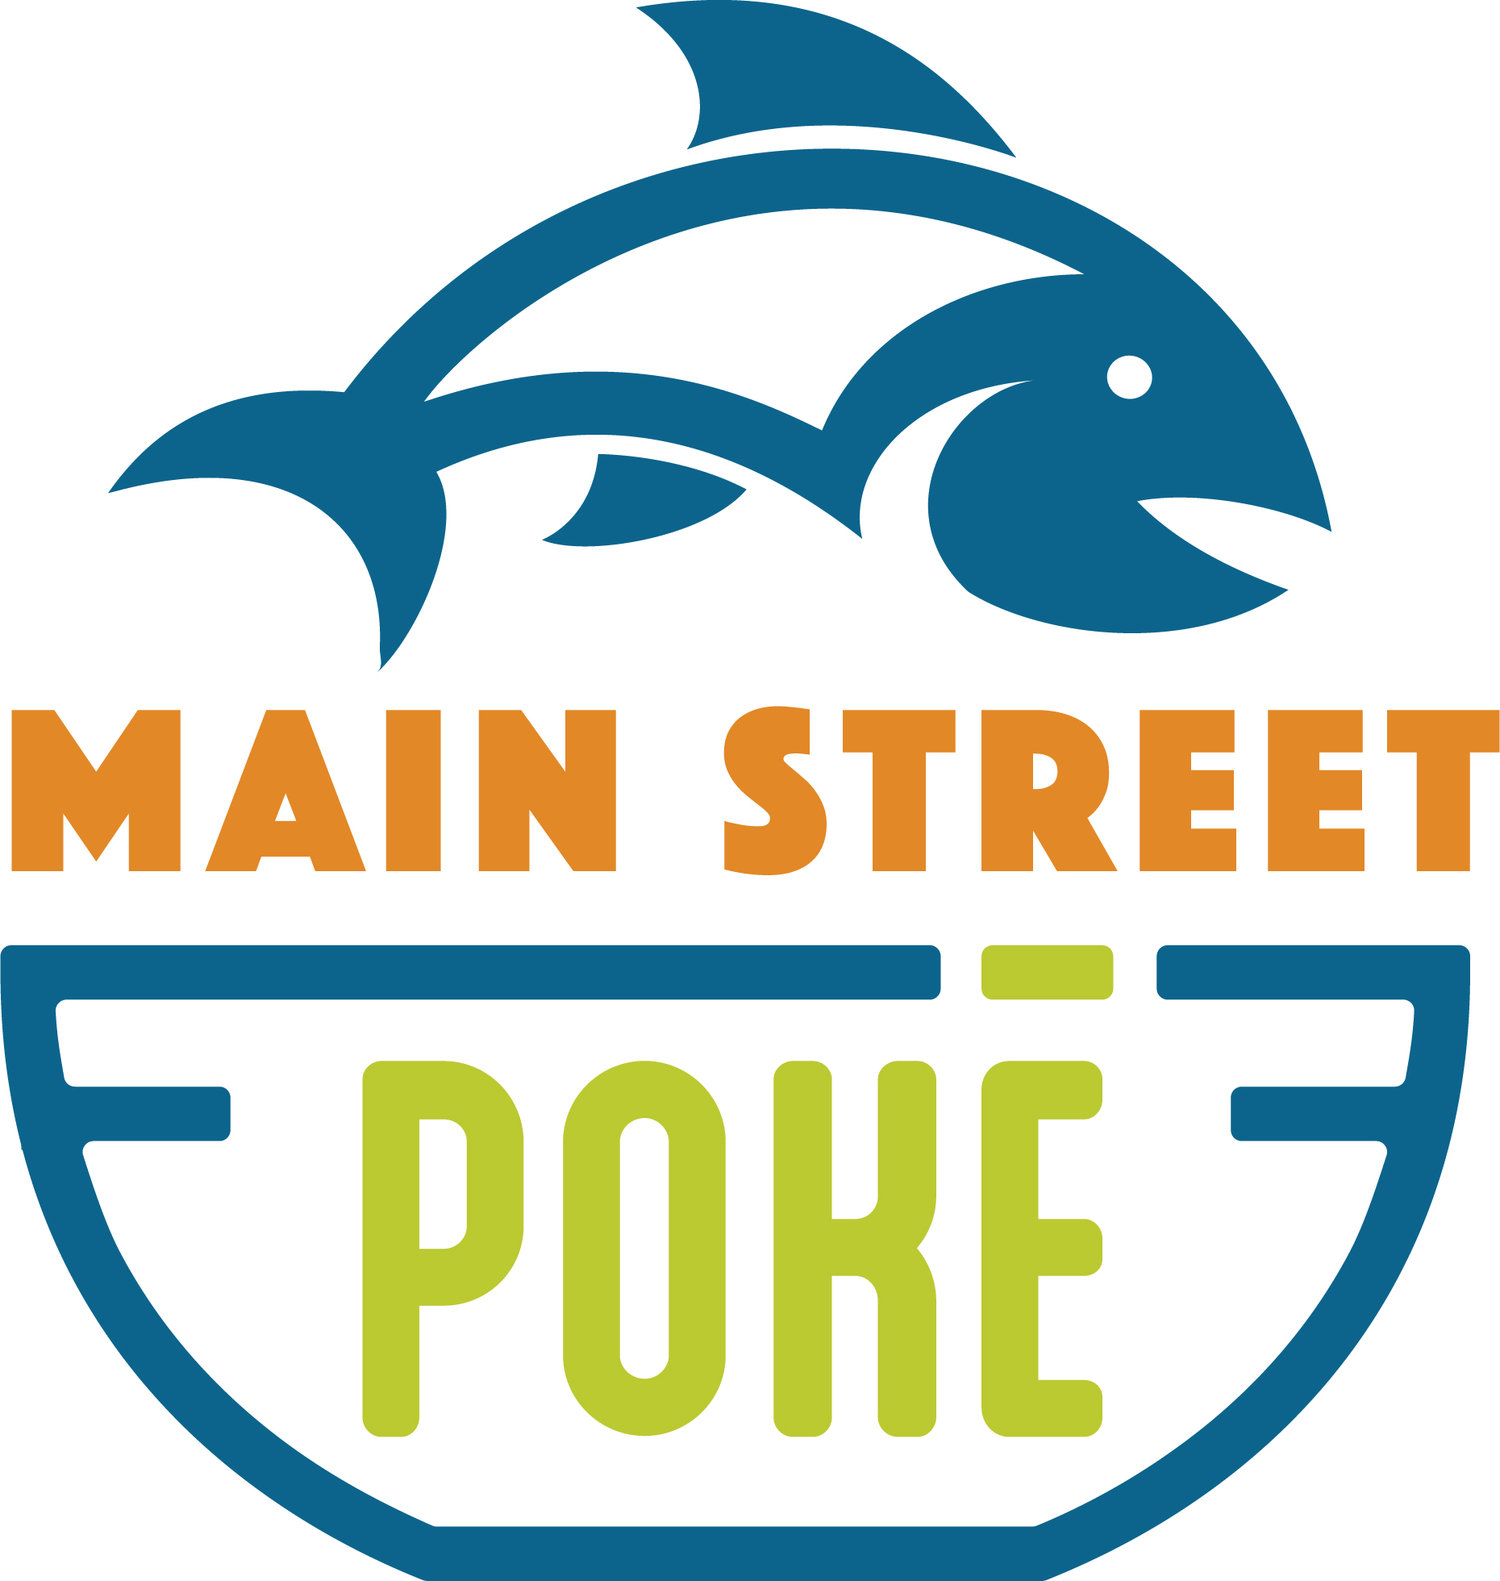 Main Street Poke - 116th